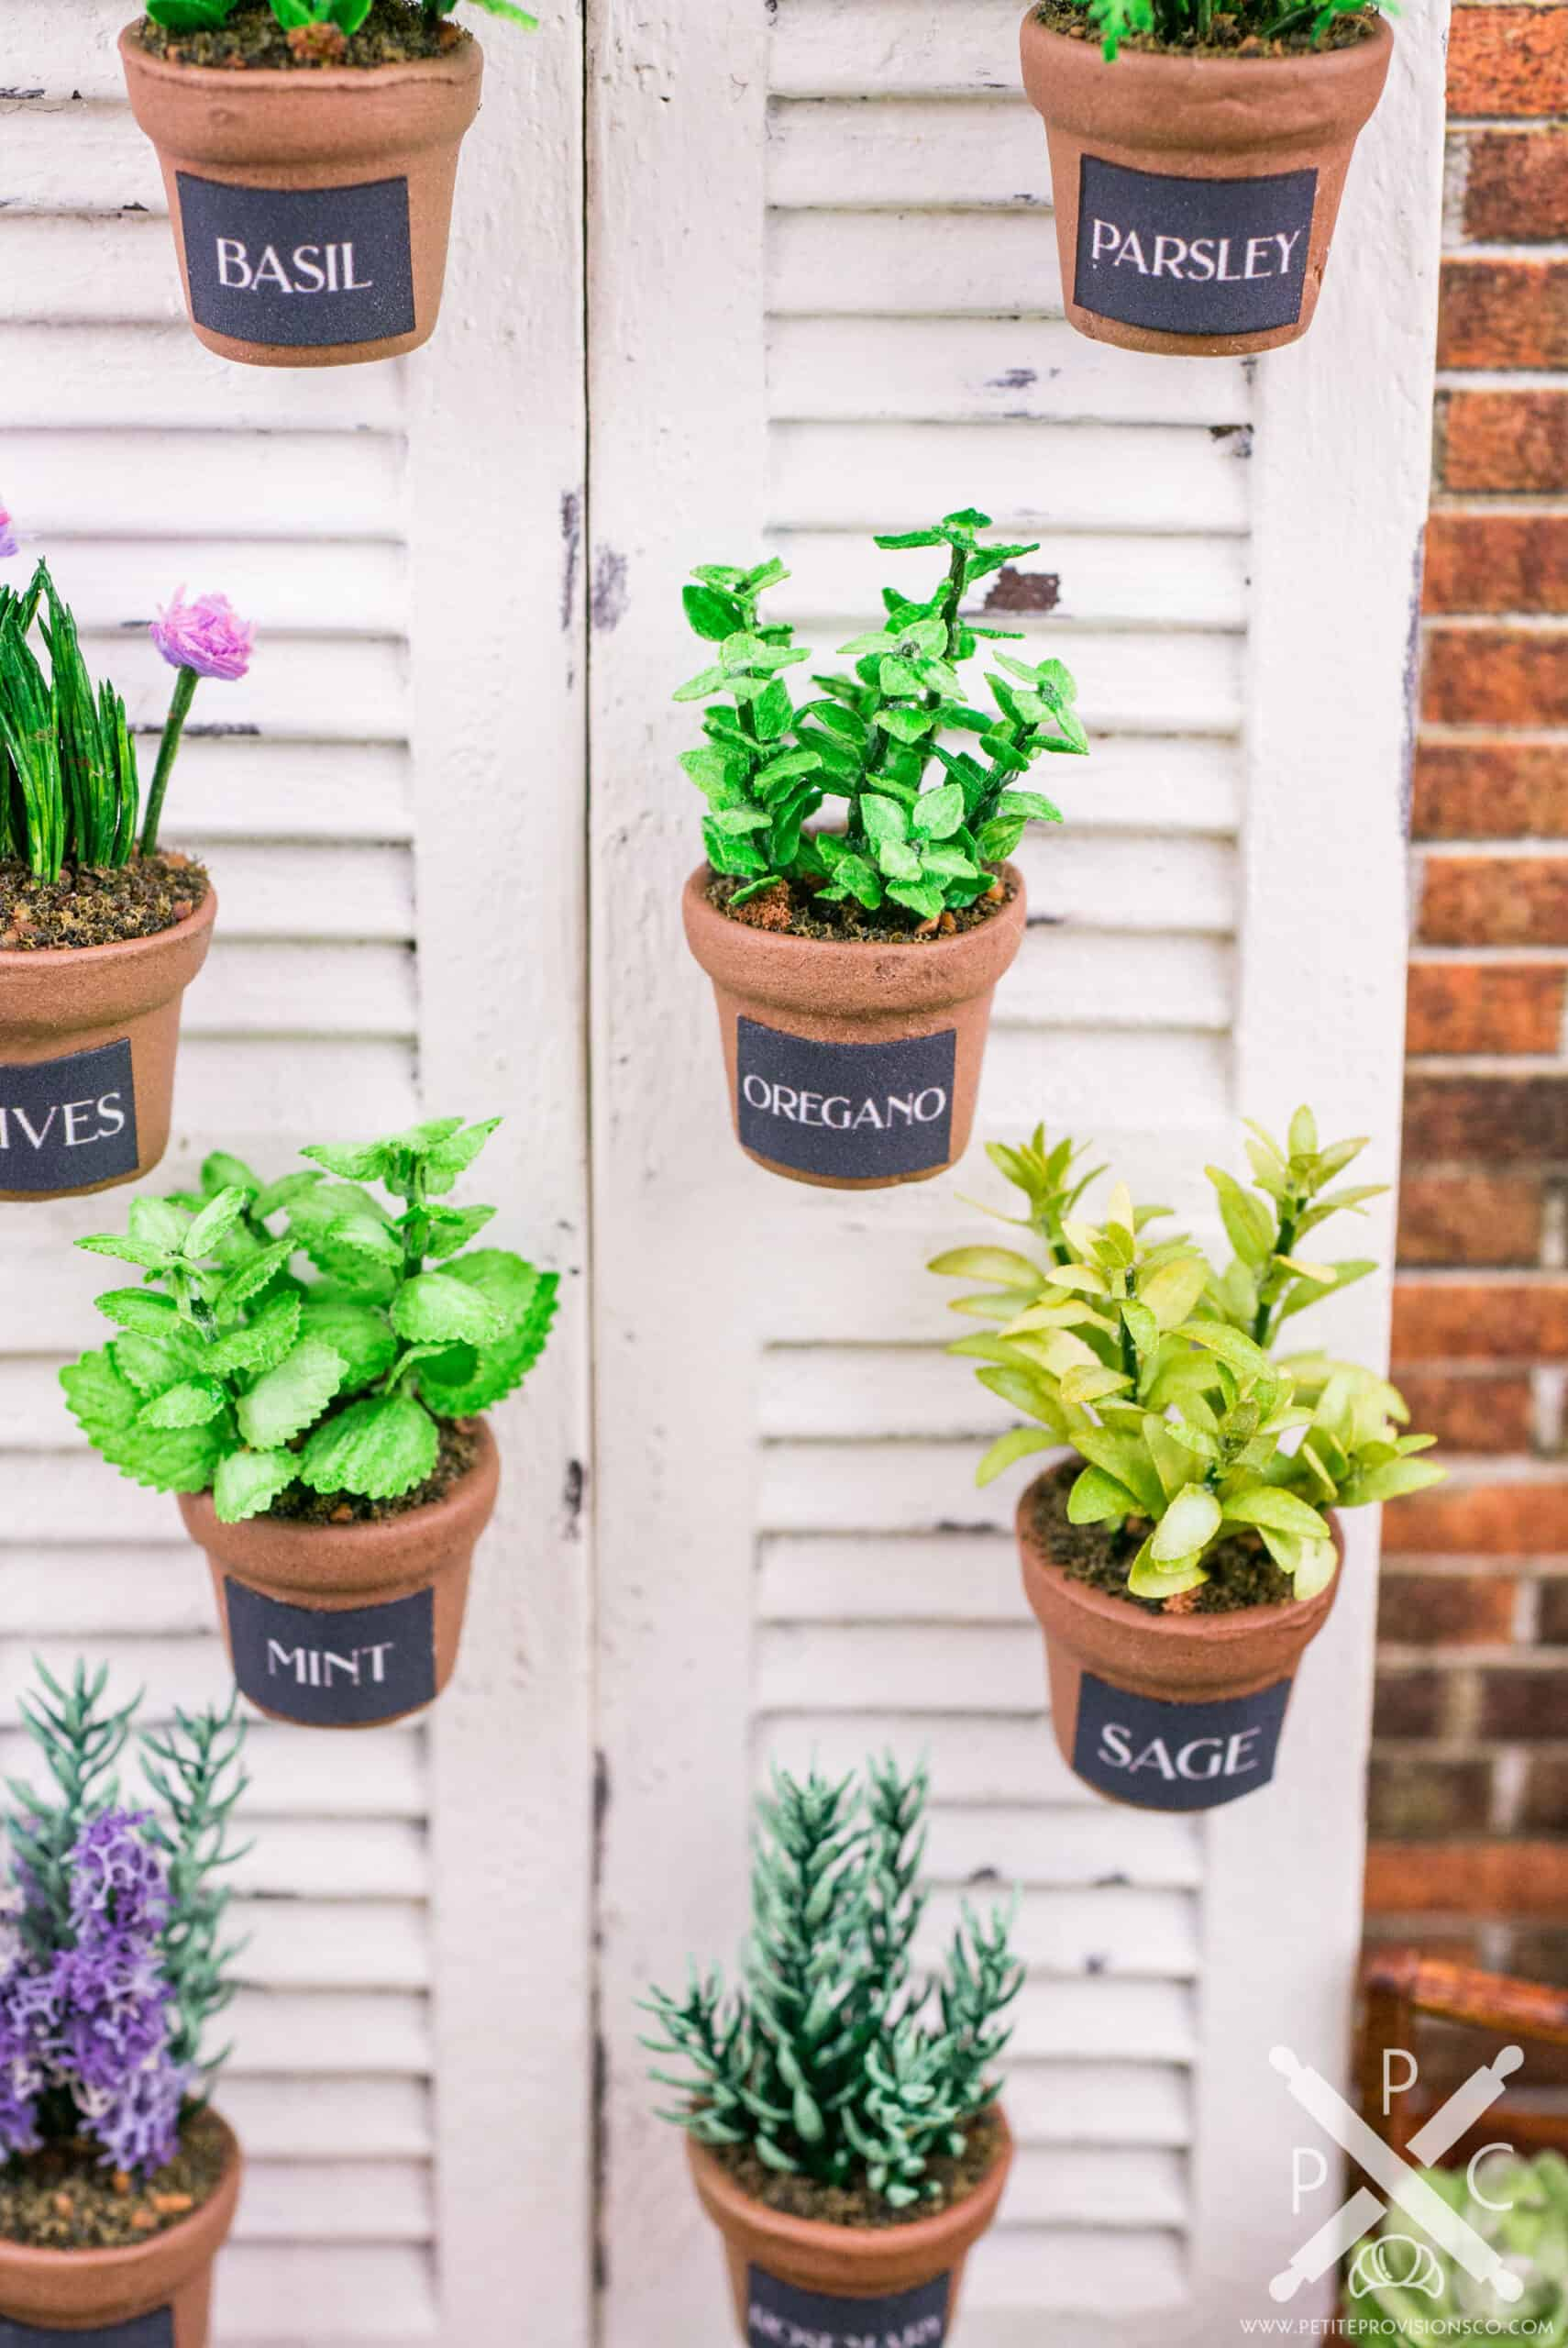 1:12 scale handmade herbs in pots on window shutters